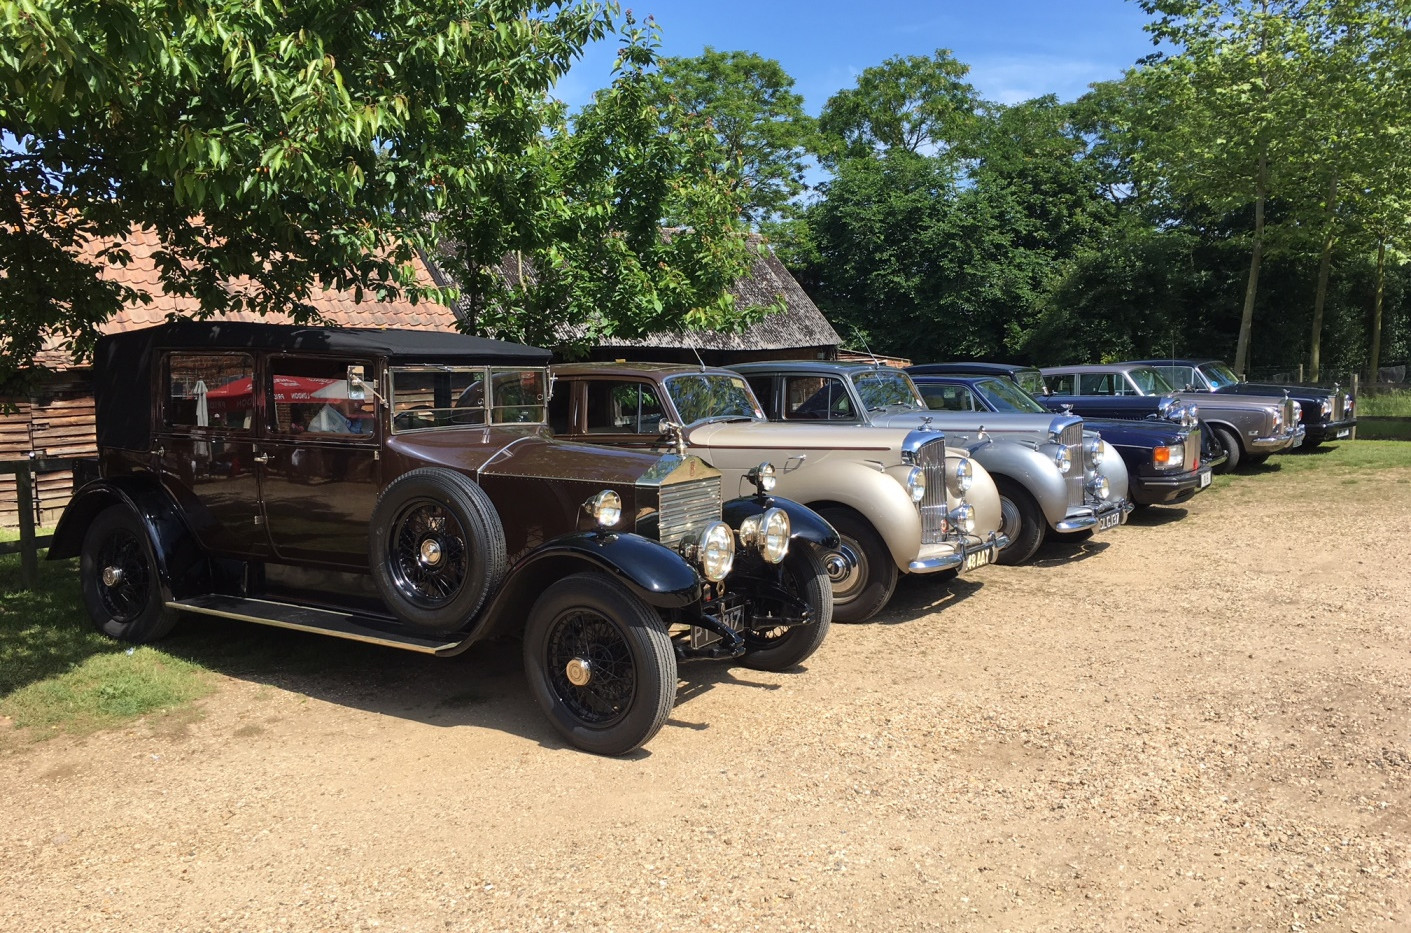 Club cars at the lunch stop